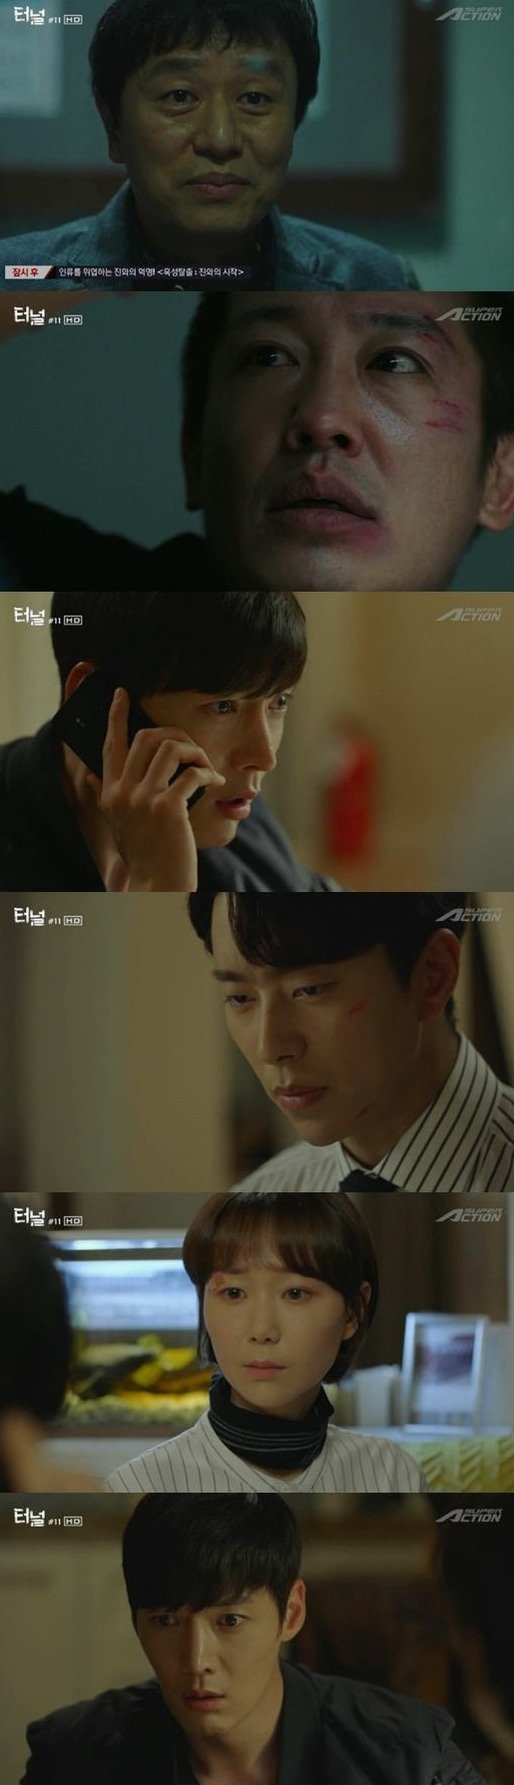 [Spoiler] Added episodes 11 and 12 captures for the Korean drama 'Tunnel - Drama'